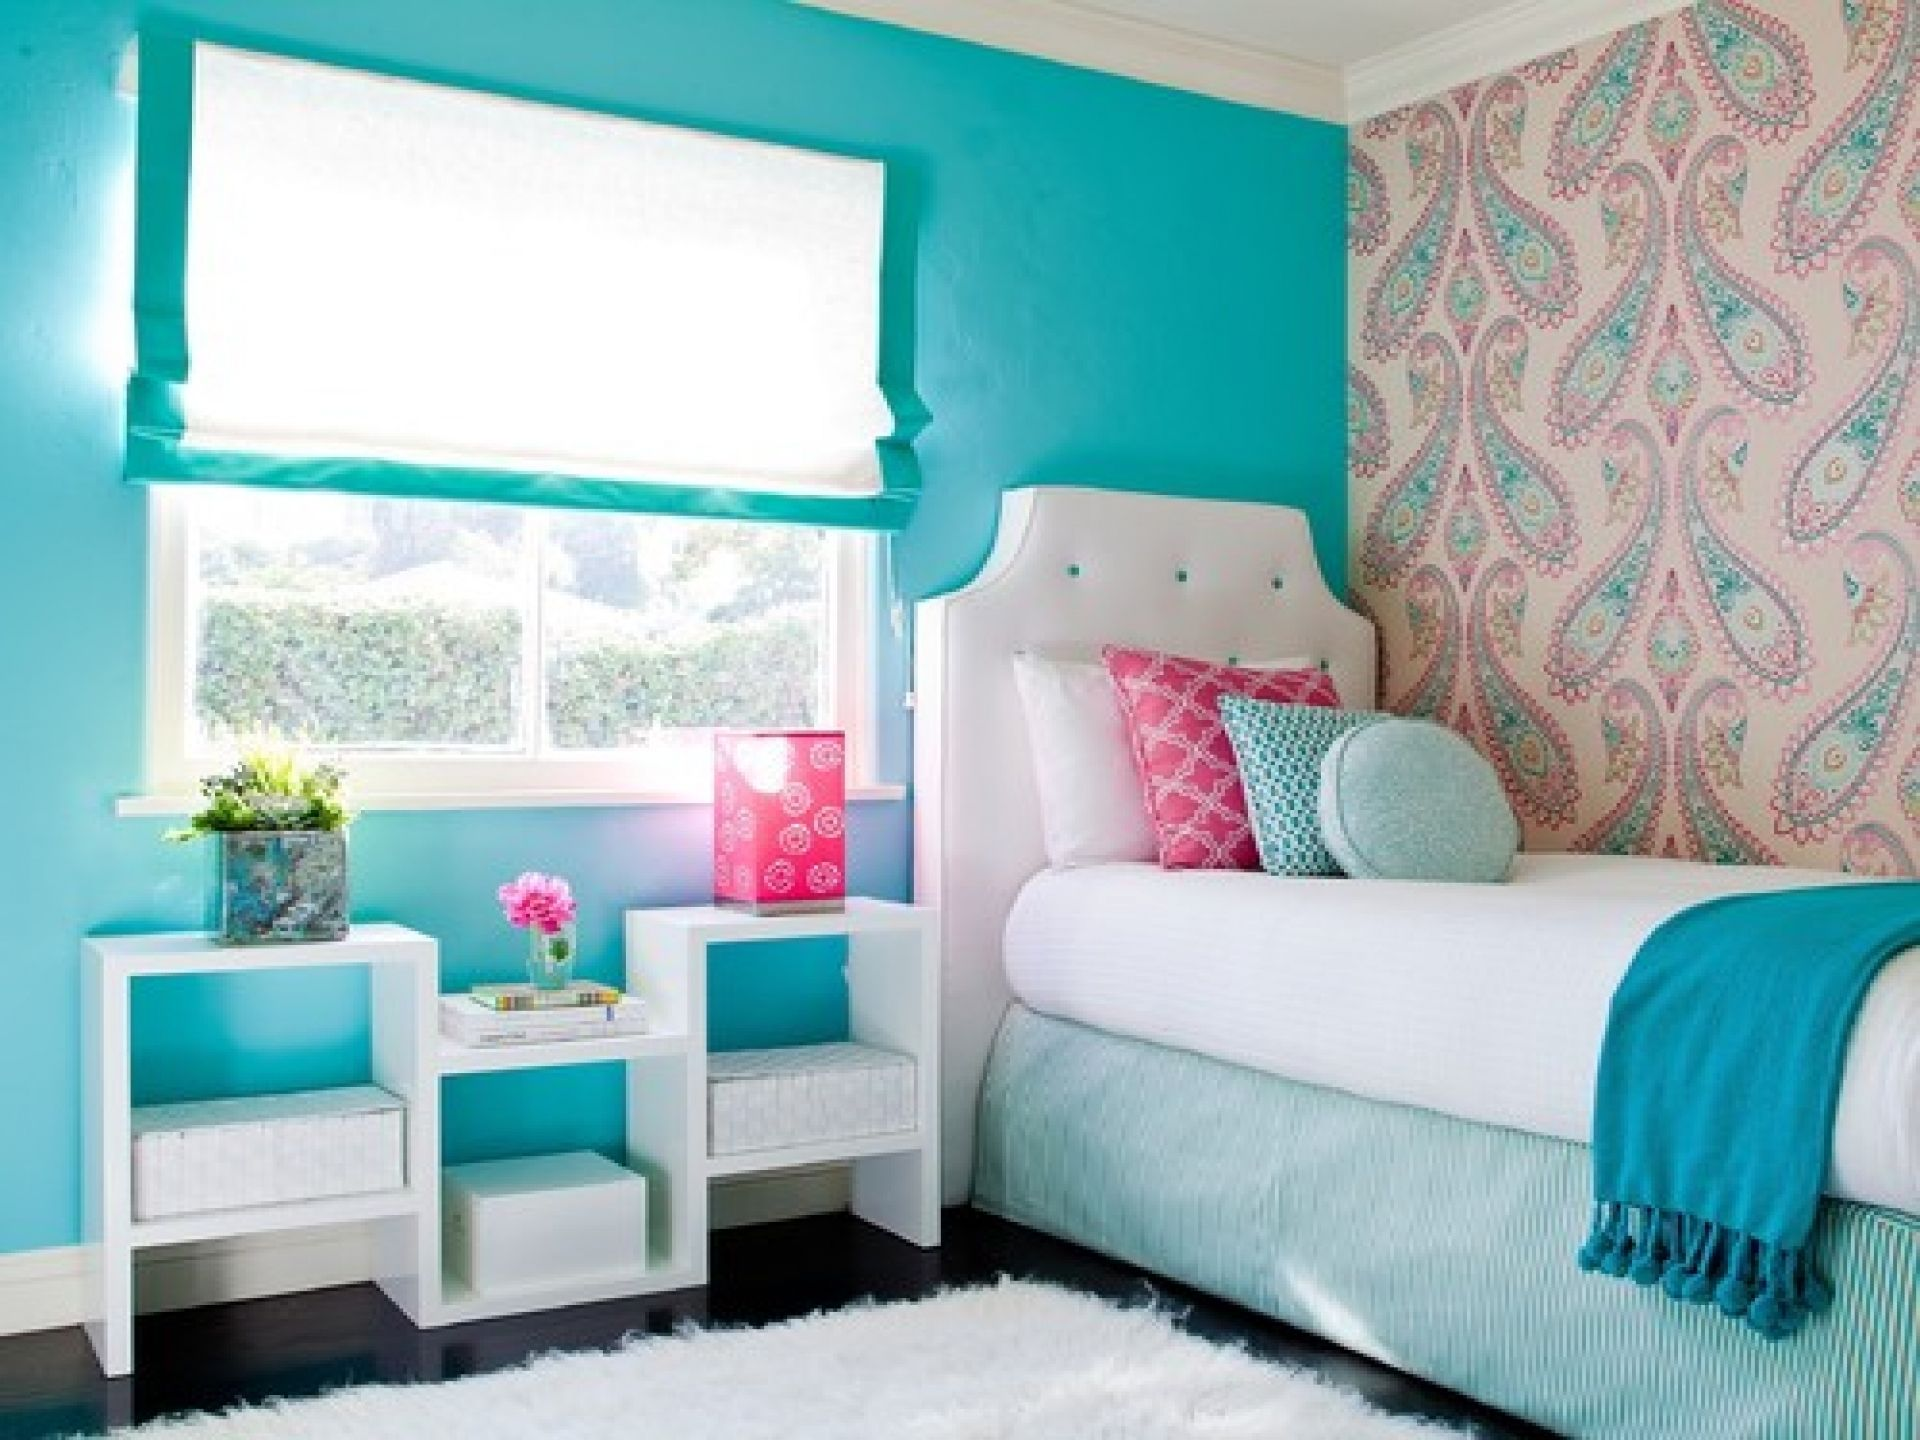 Simple Teenage Bedroom Ideas Simple Design Comfy Room Colors Teenage Girl Bedroom Wall